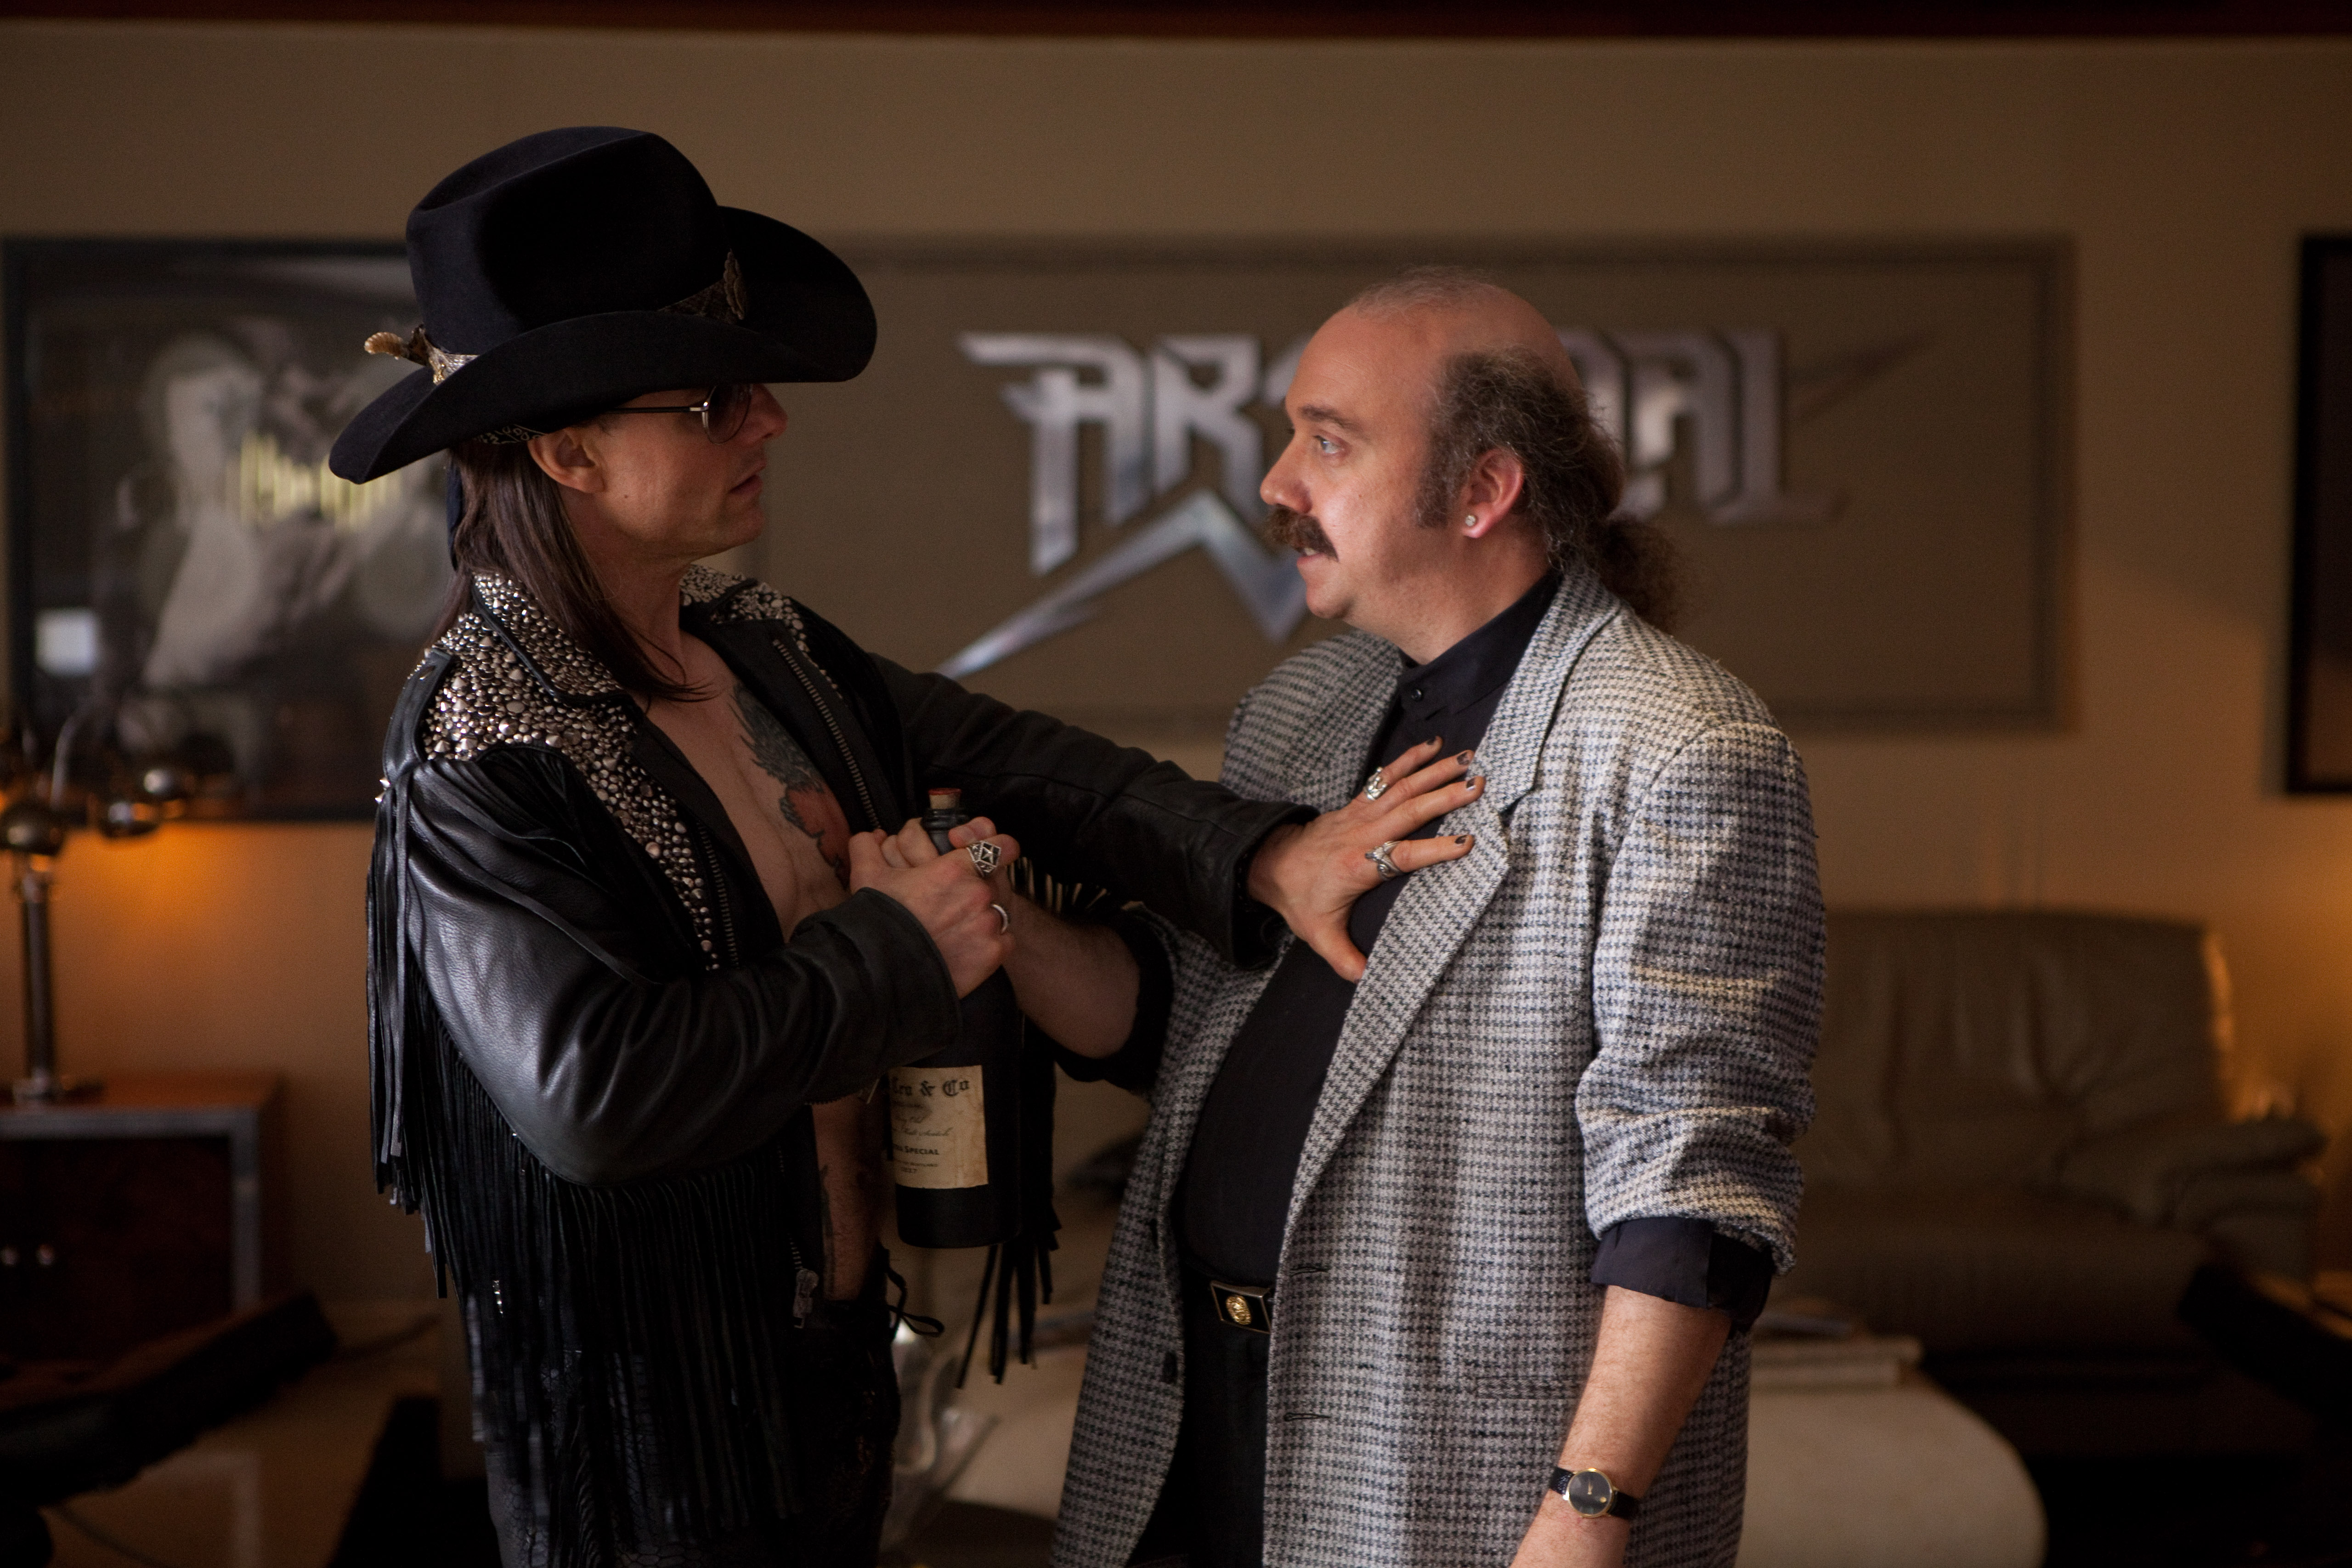 ROCK OF AGES Movie Images Featuring Tom Cruise Collider 5120x3413